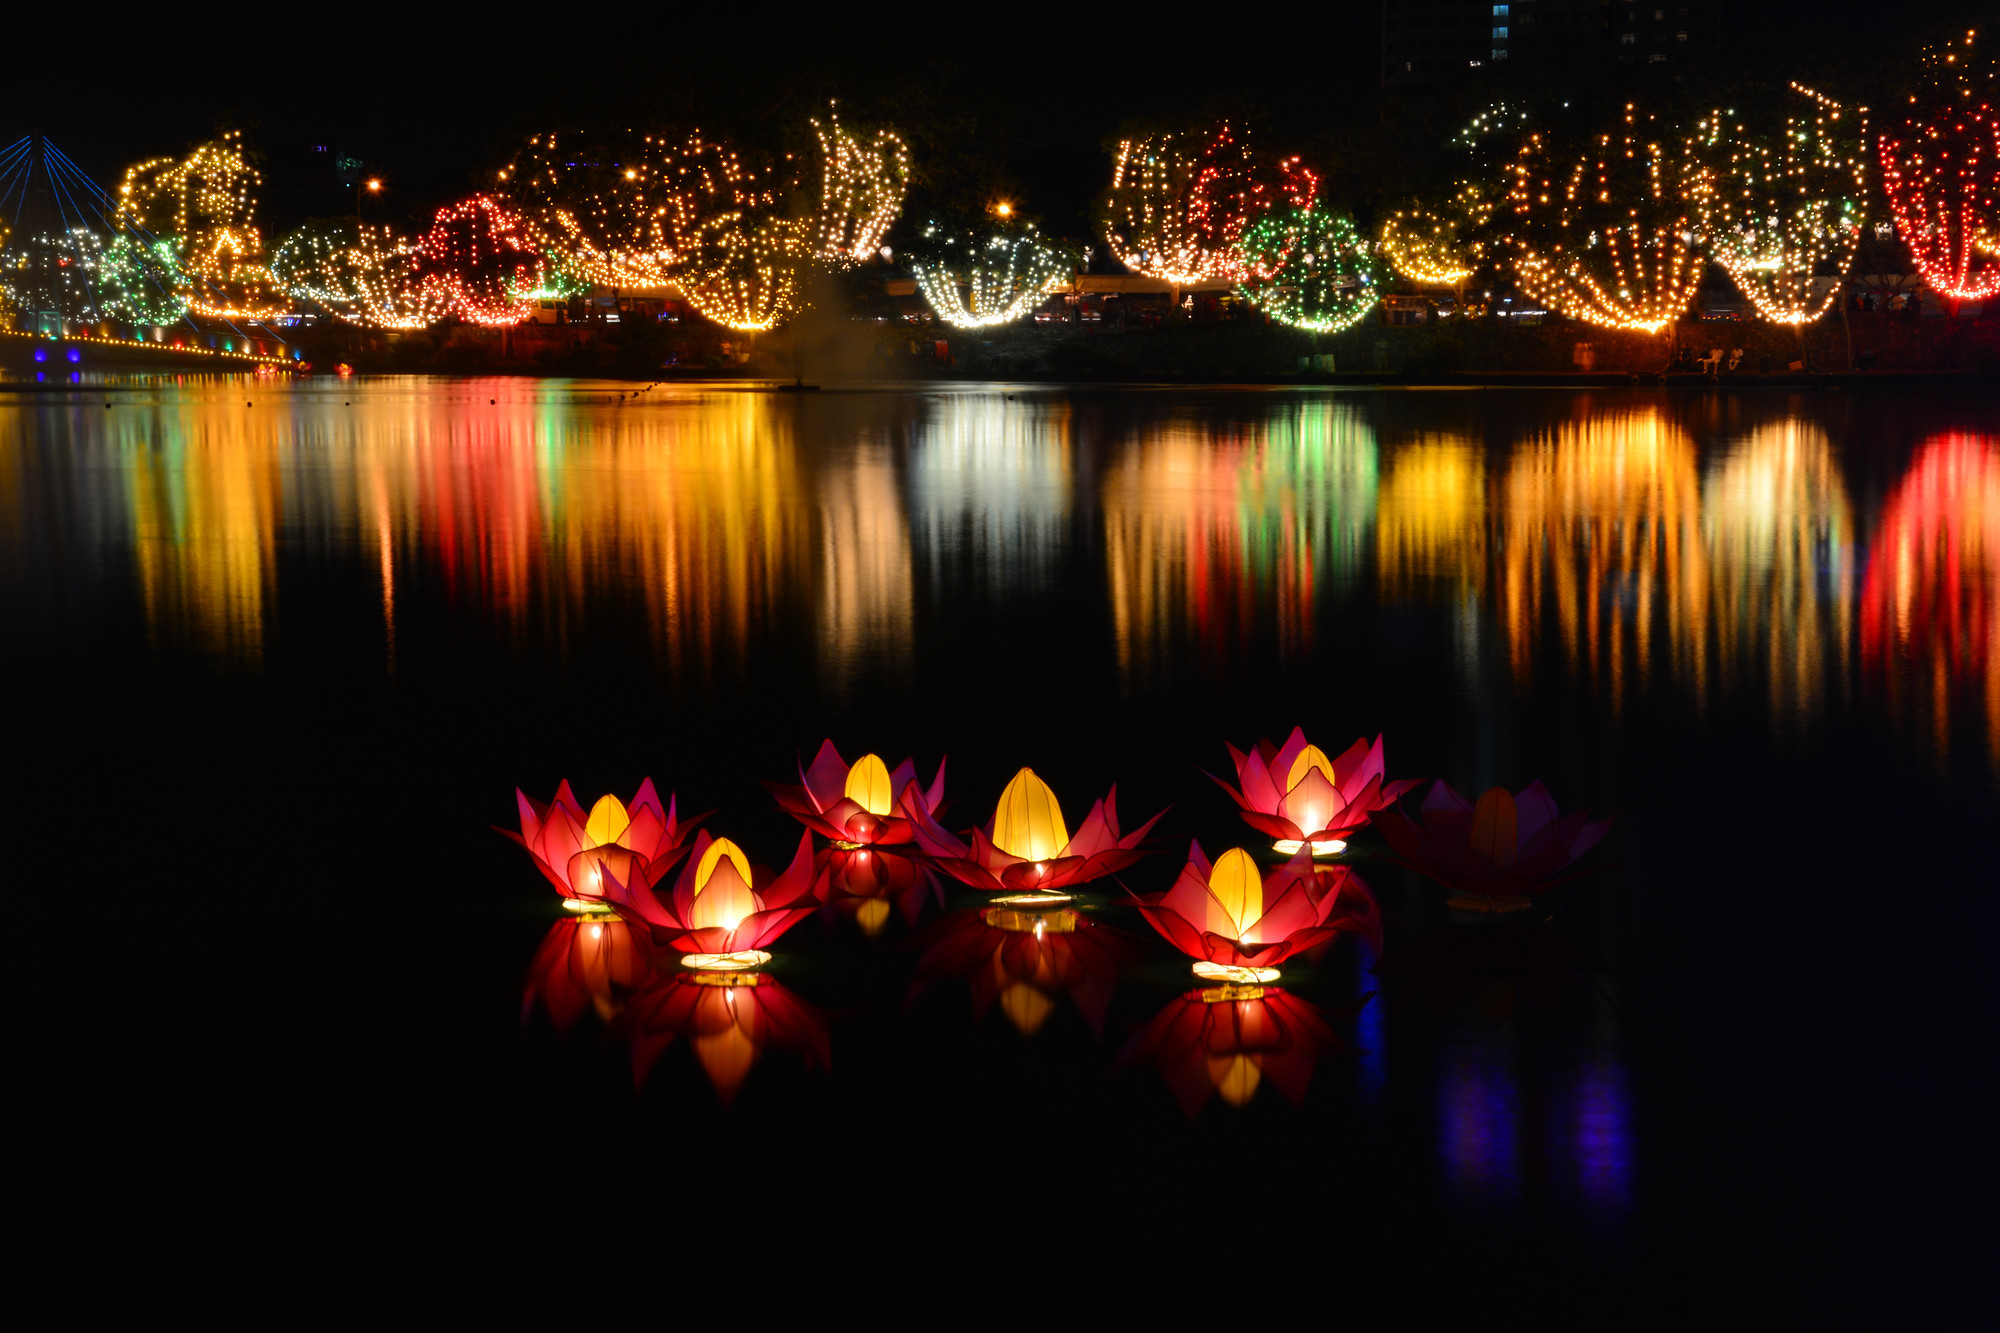 Colombo bere lake at night on Vesak Day. 7 Reasons Why Holidaying in Sri Lanka Saves You Money - SpaDreams